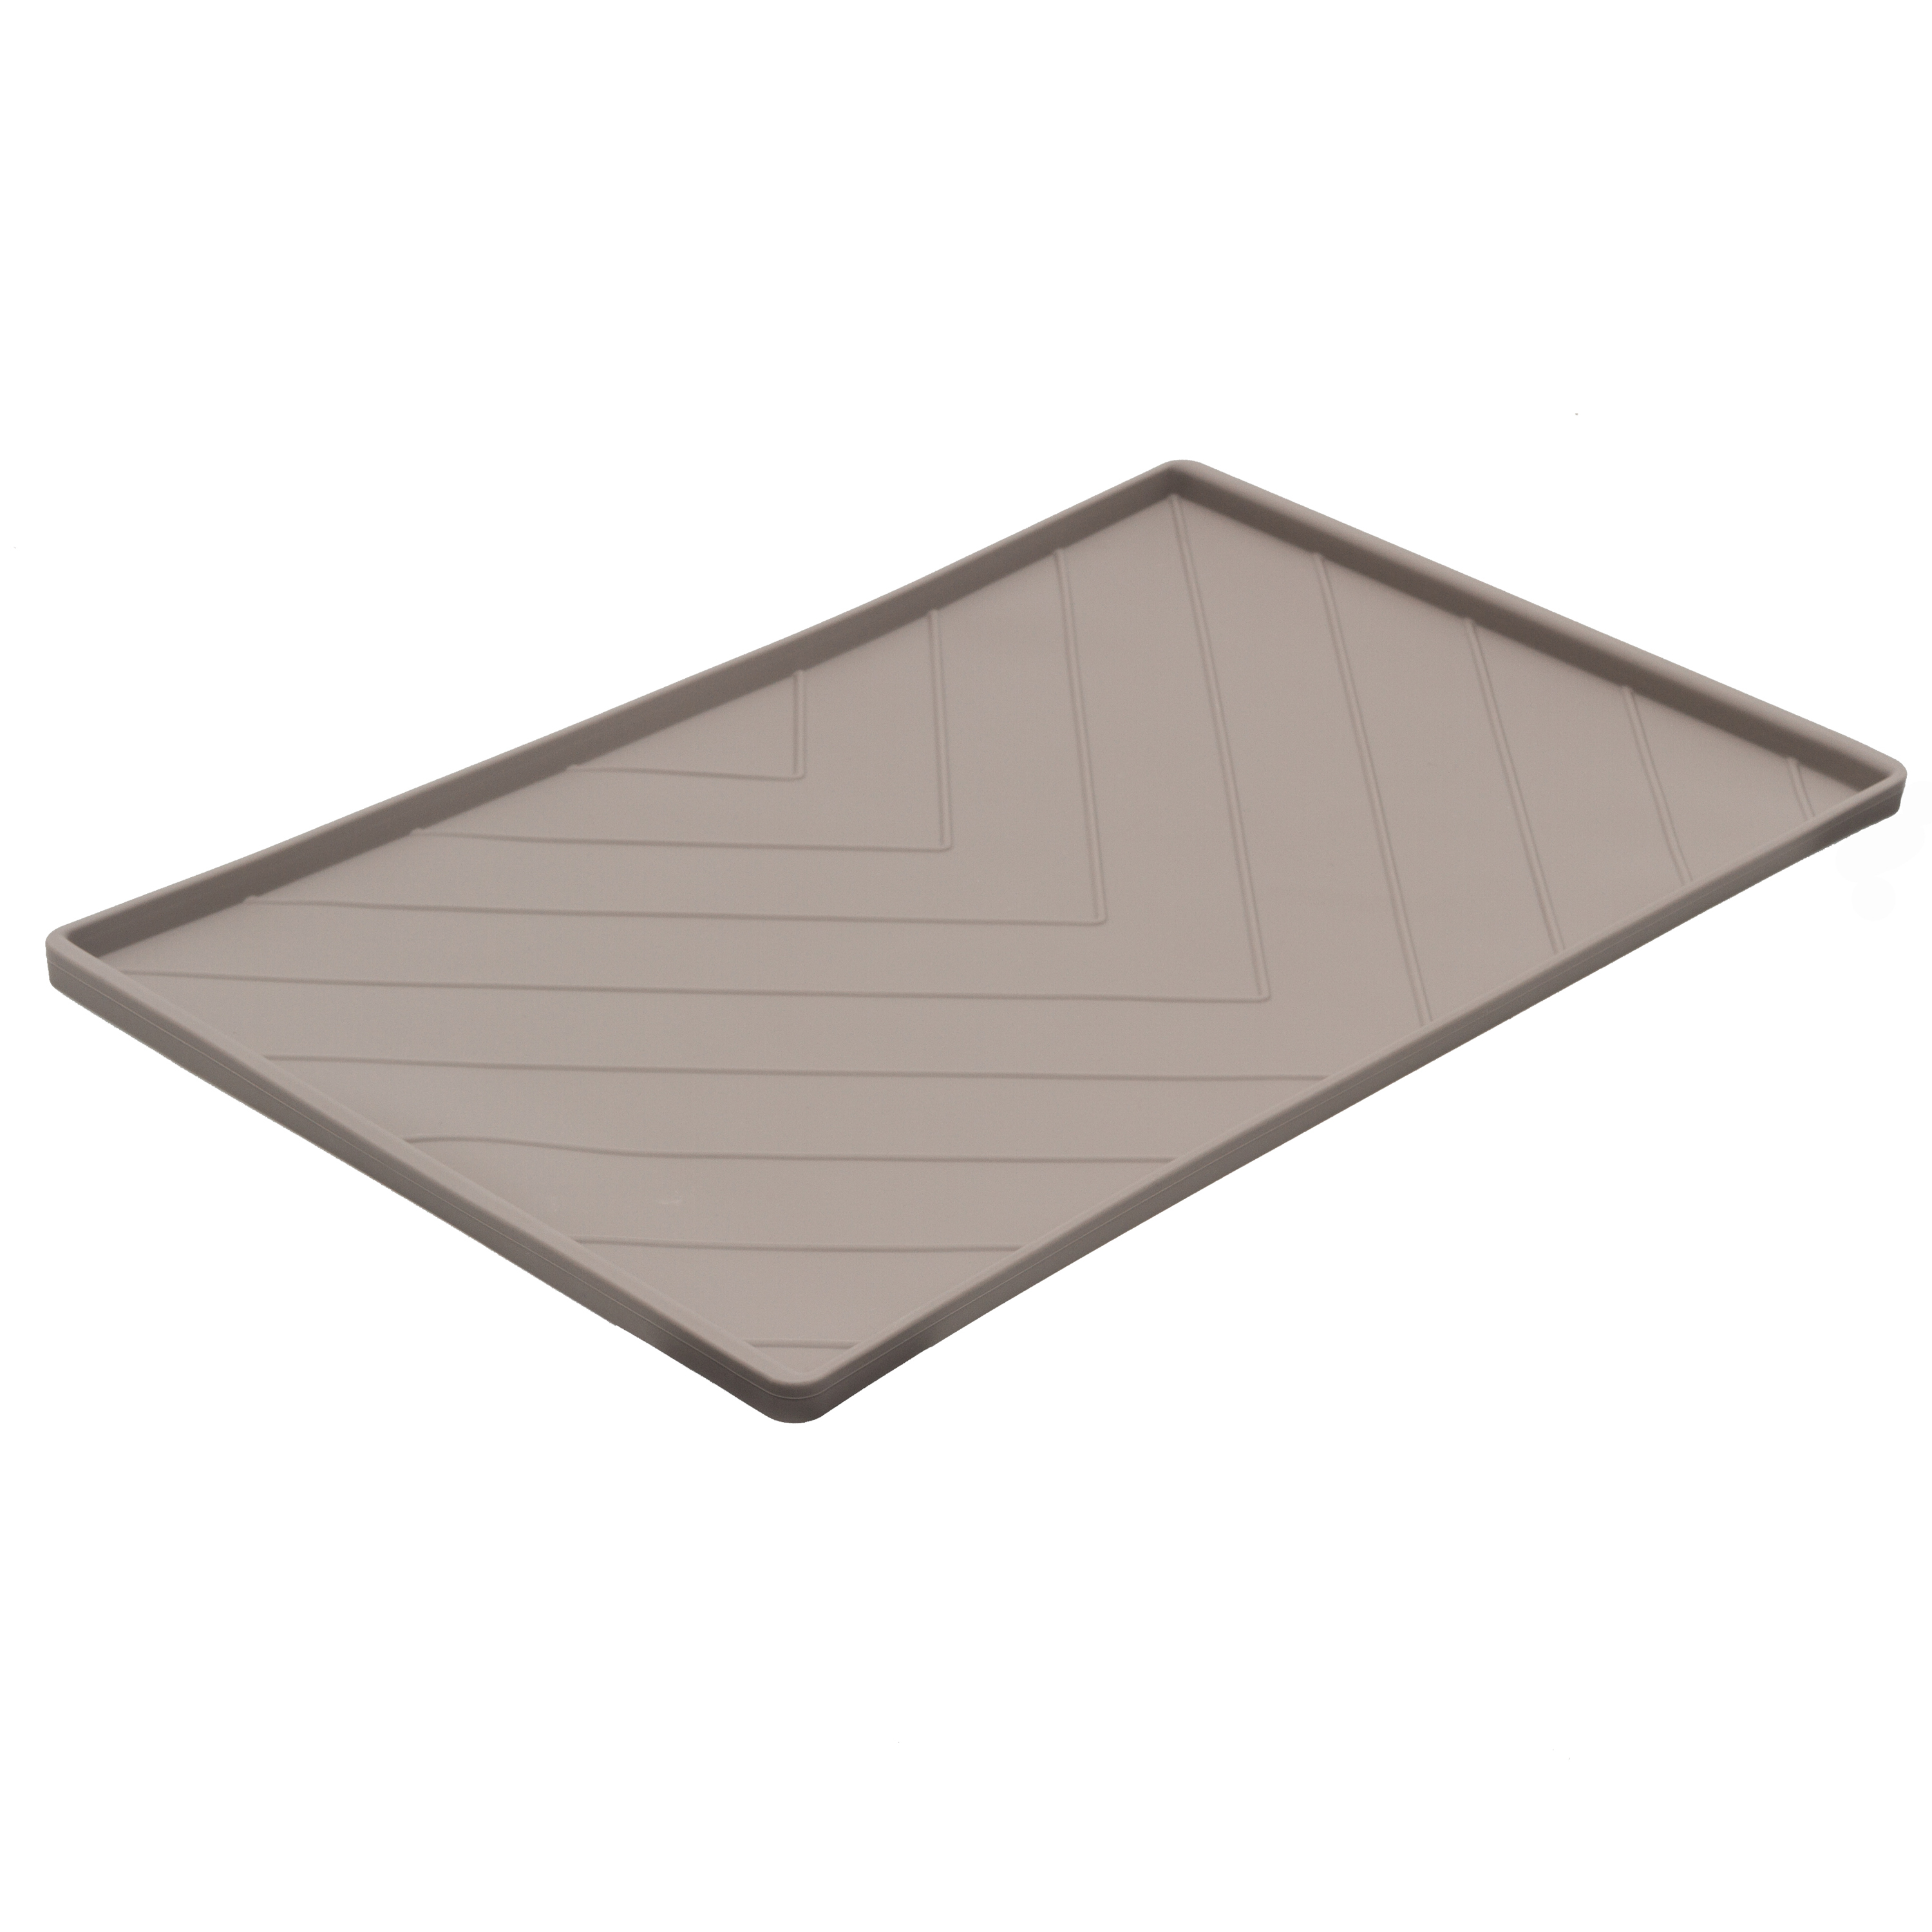 Messy Mutts Silicone Mat with Metal Rods, Gray, Medium